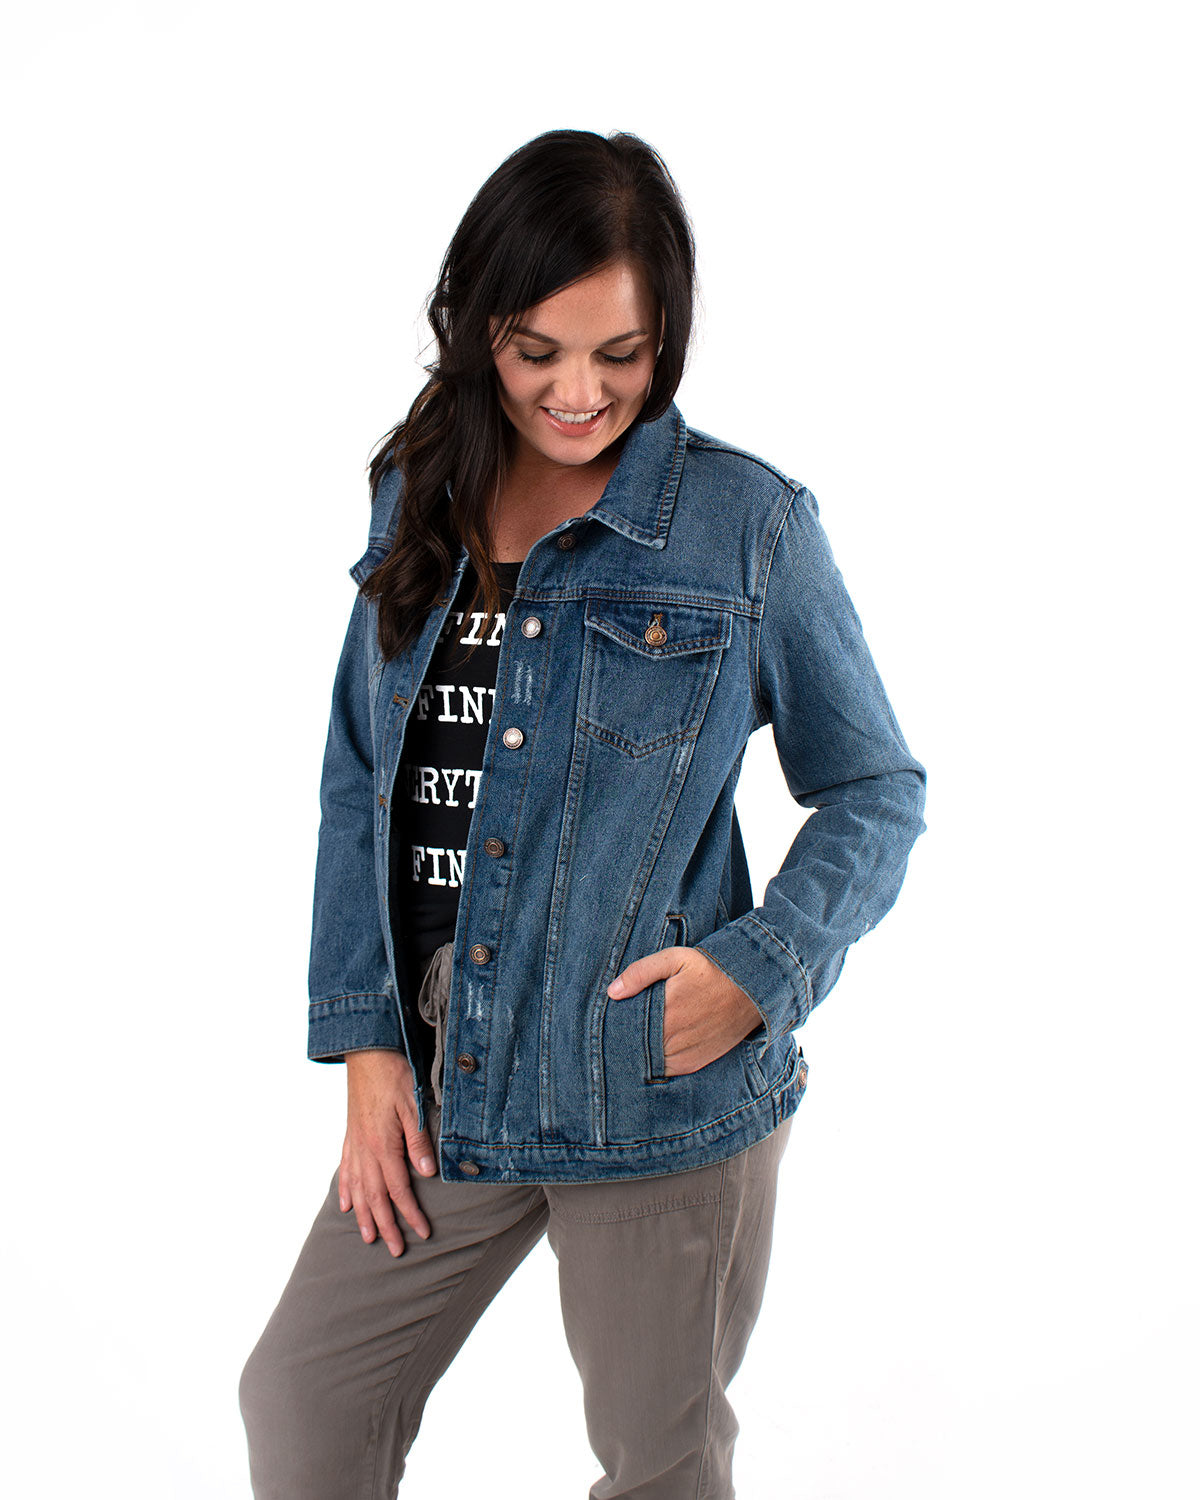 Banfield Denim Jacket